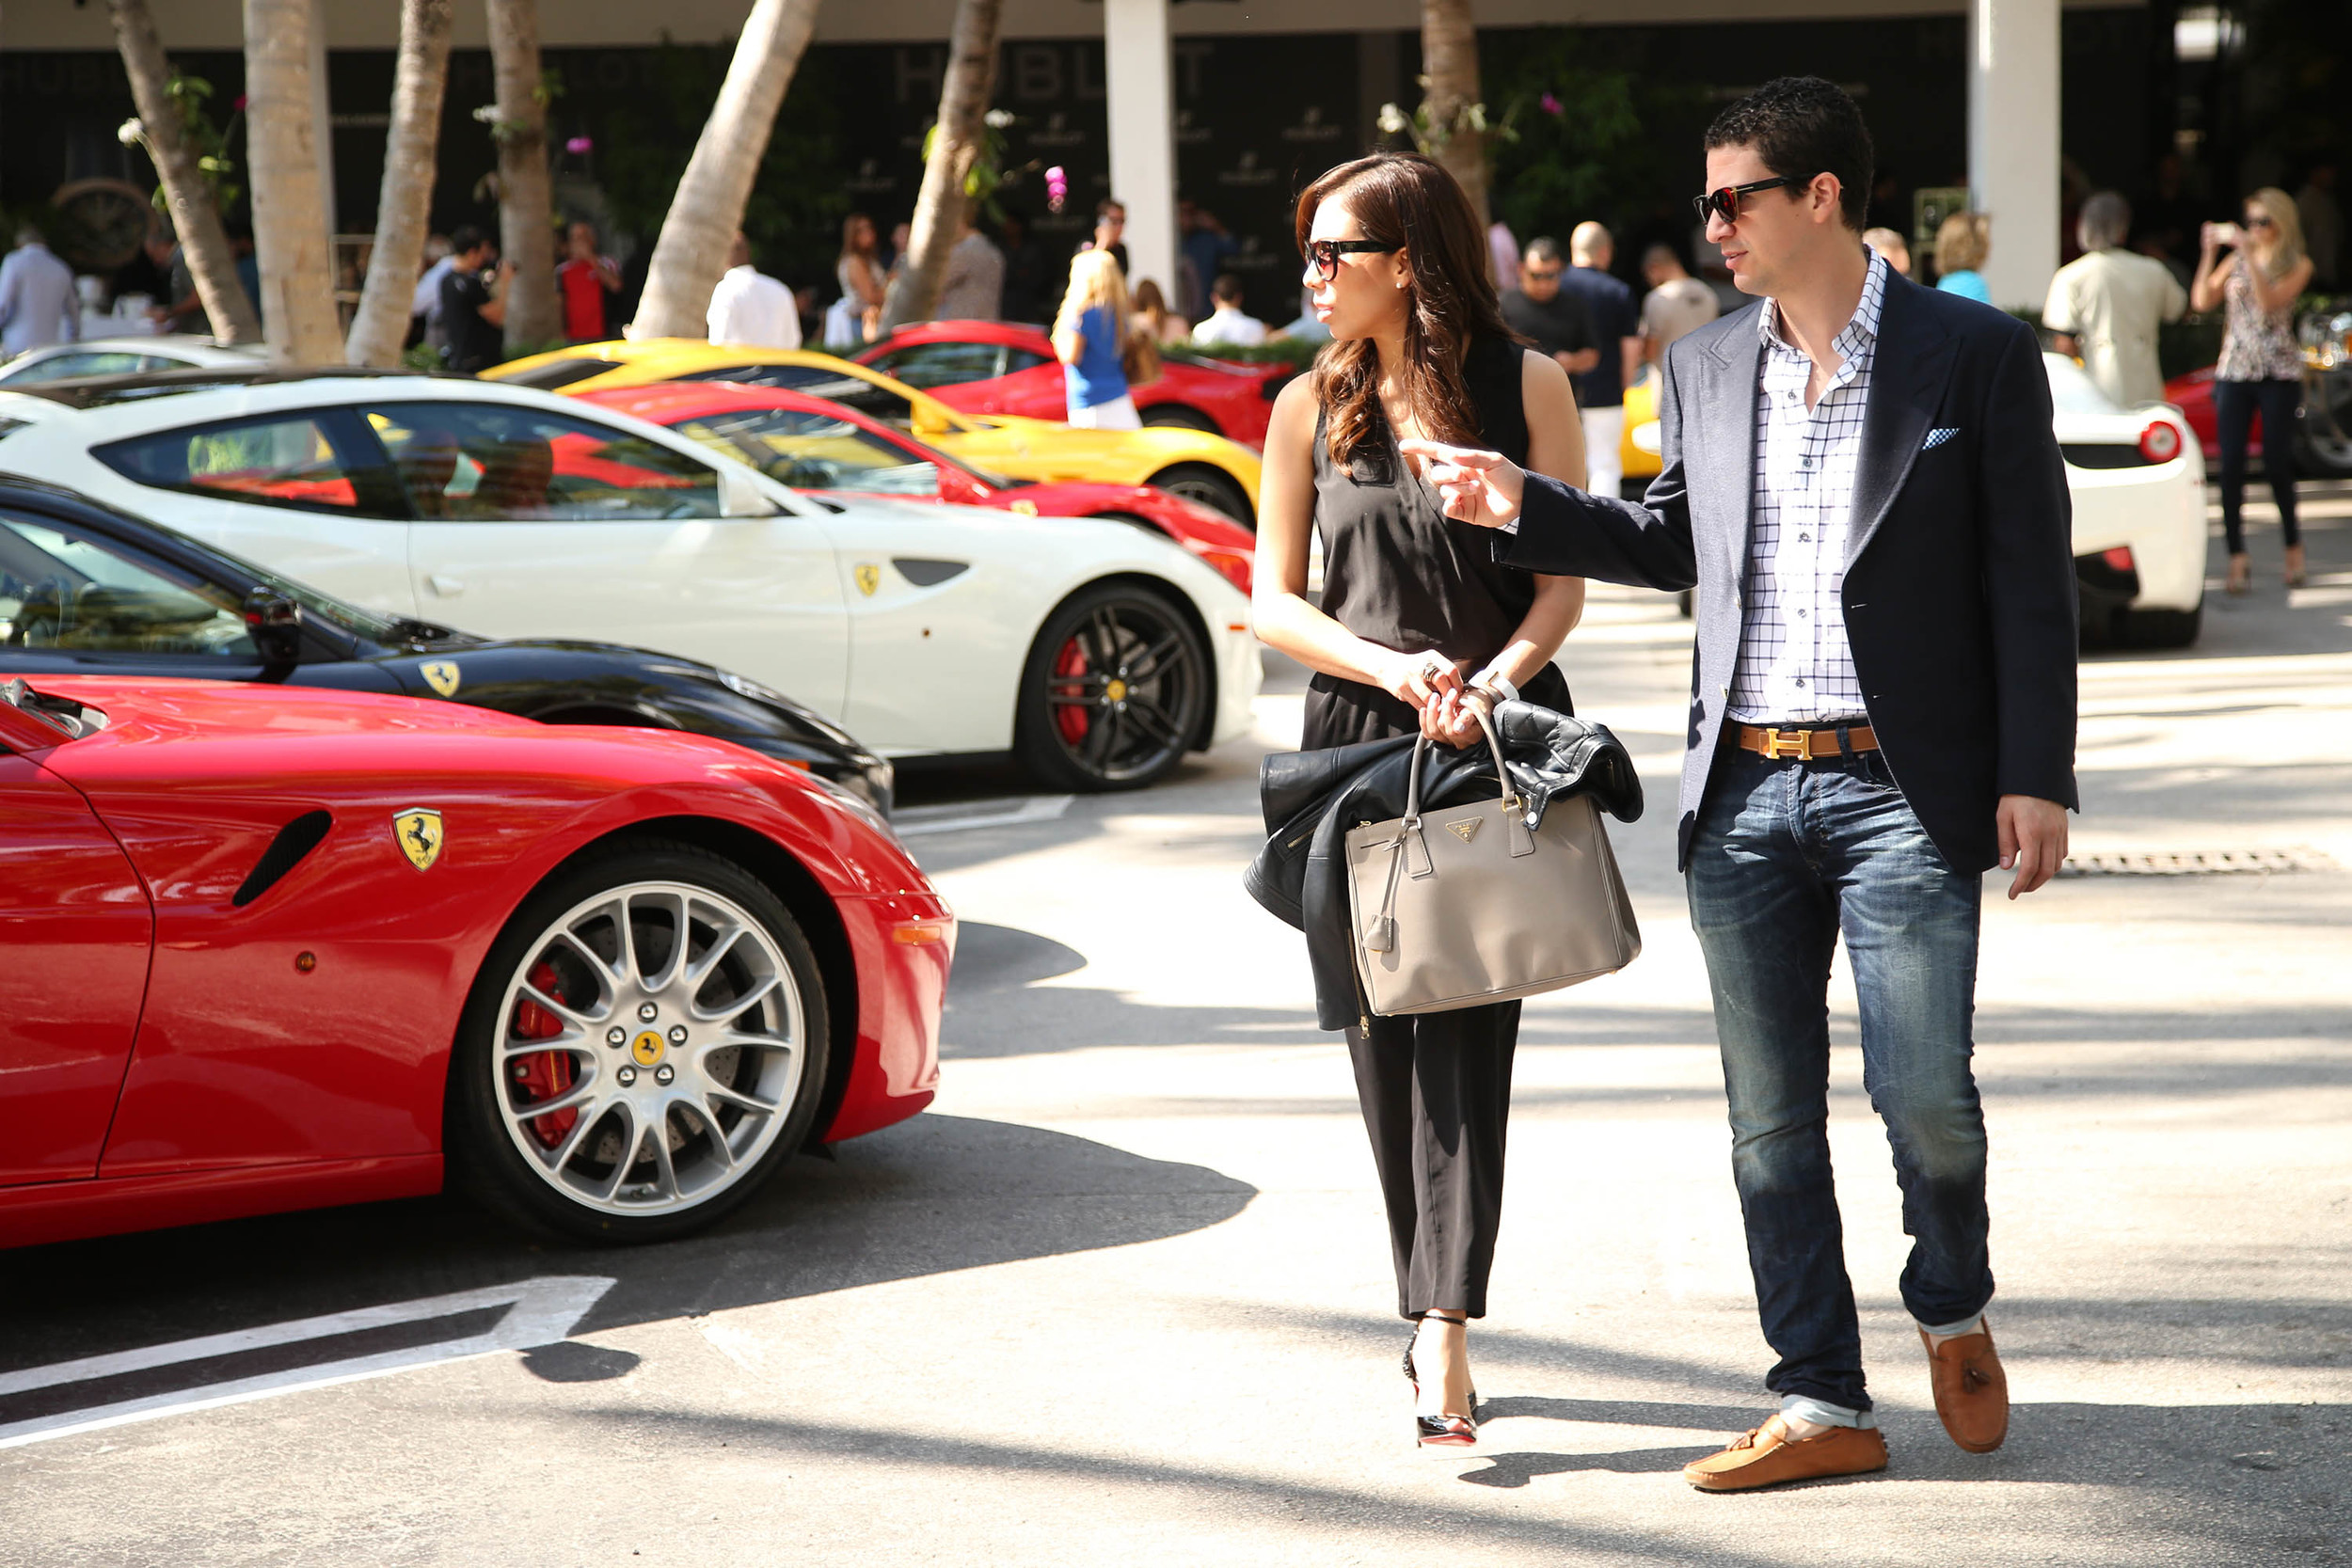 Event Attendees Taking a Look at a Ferrari.